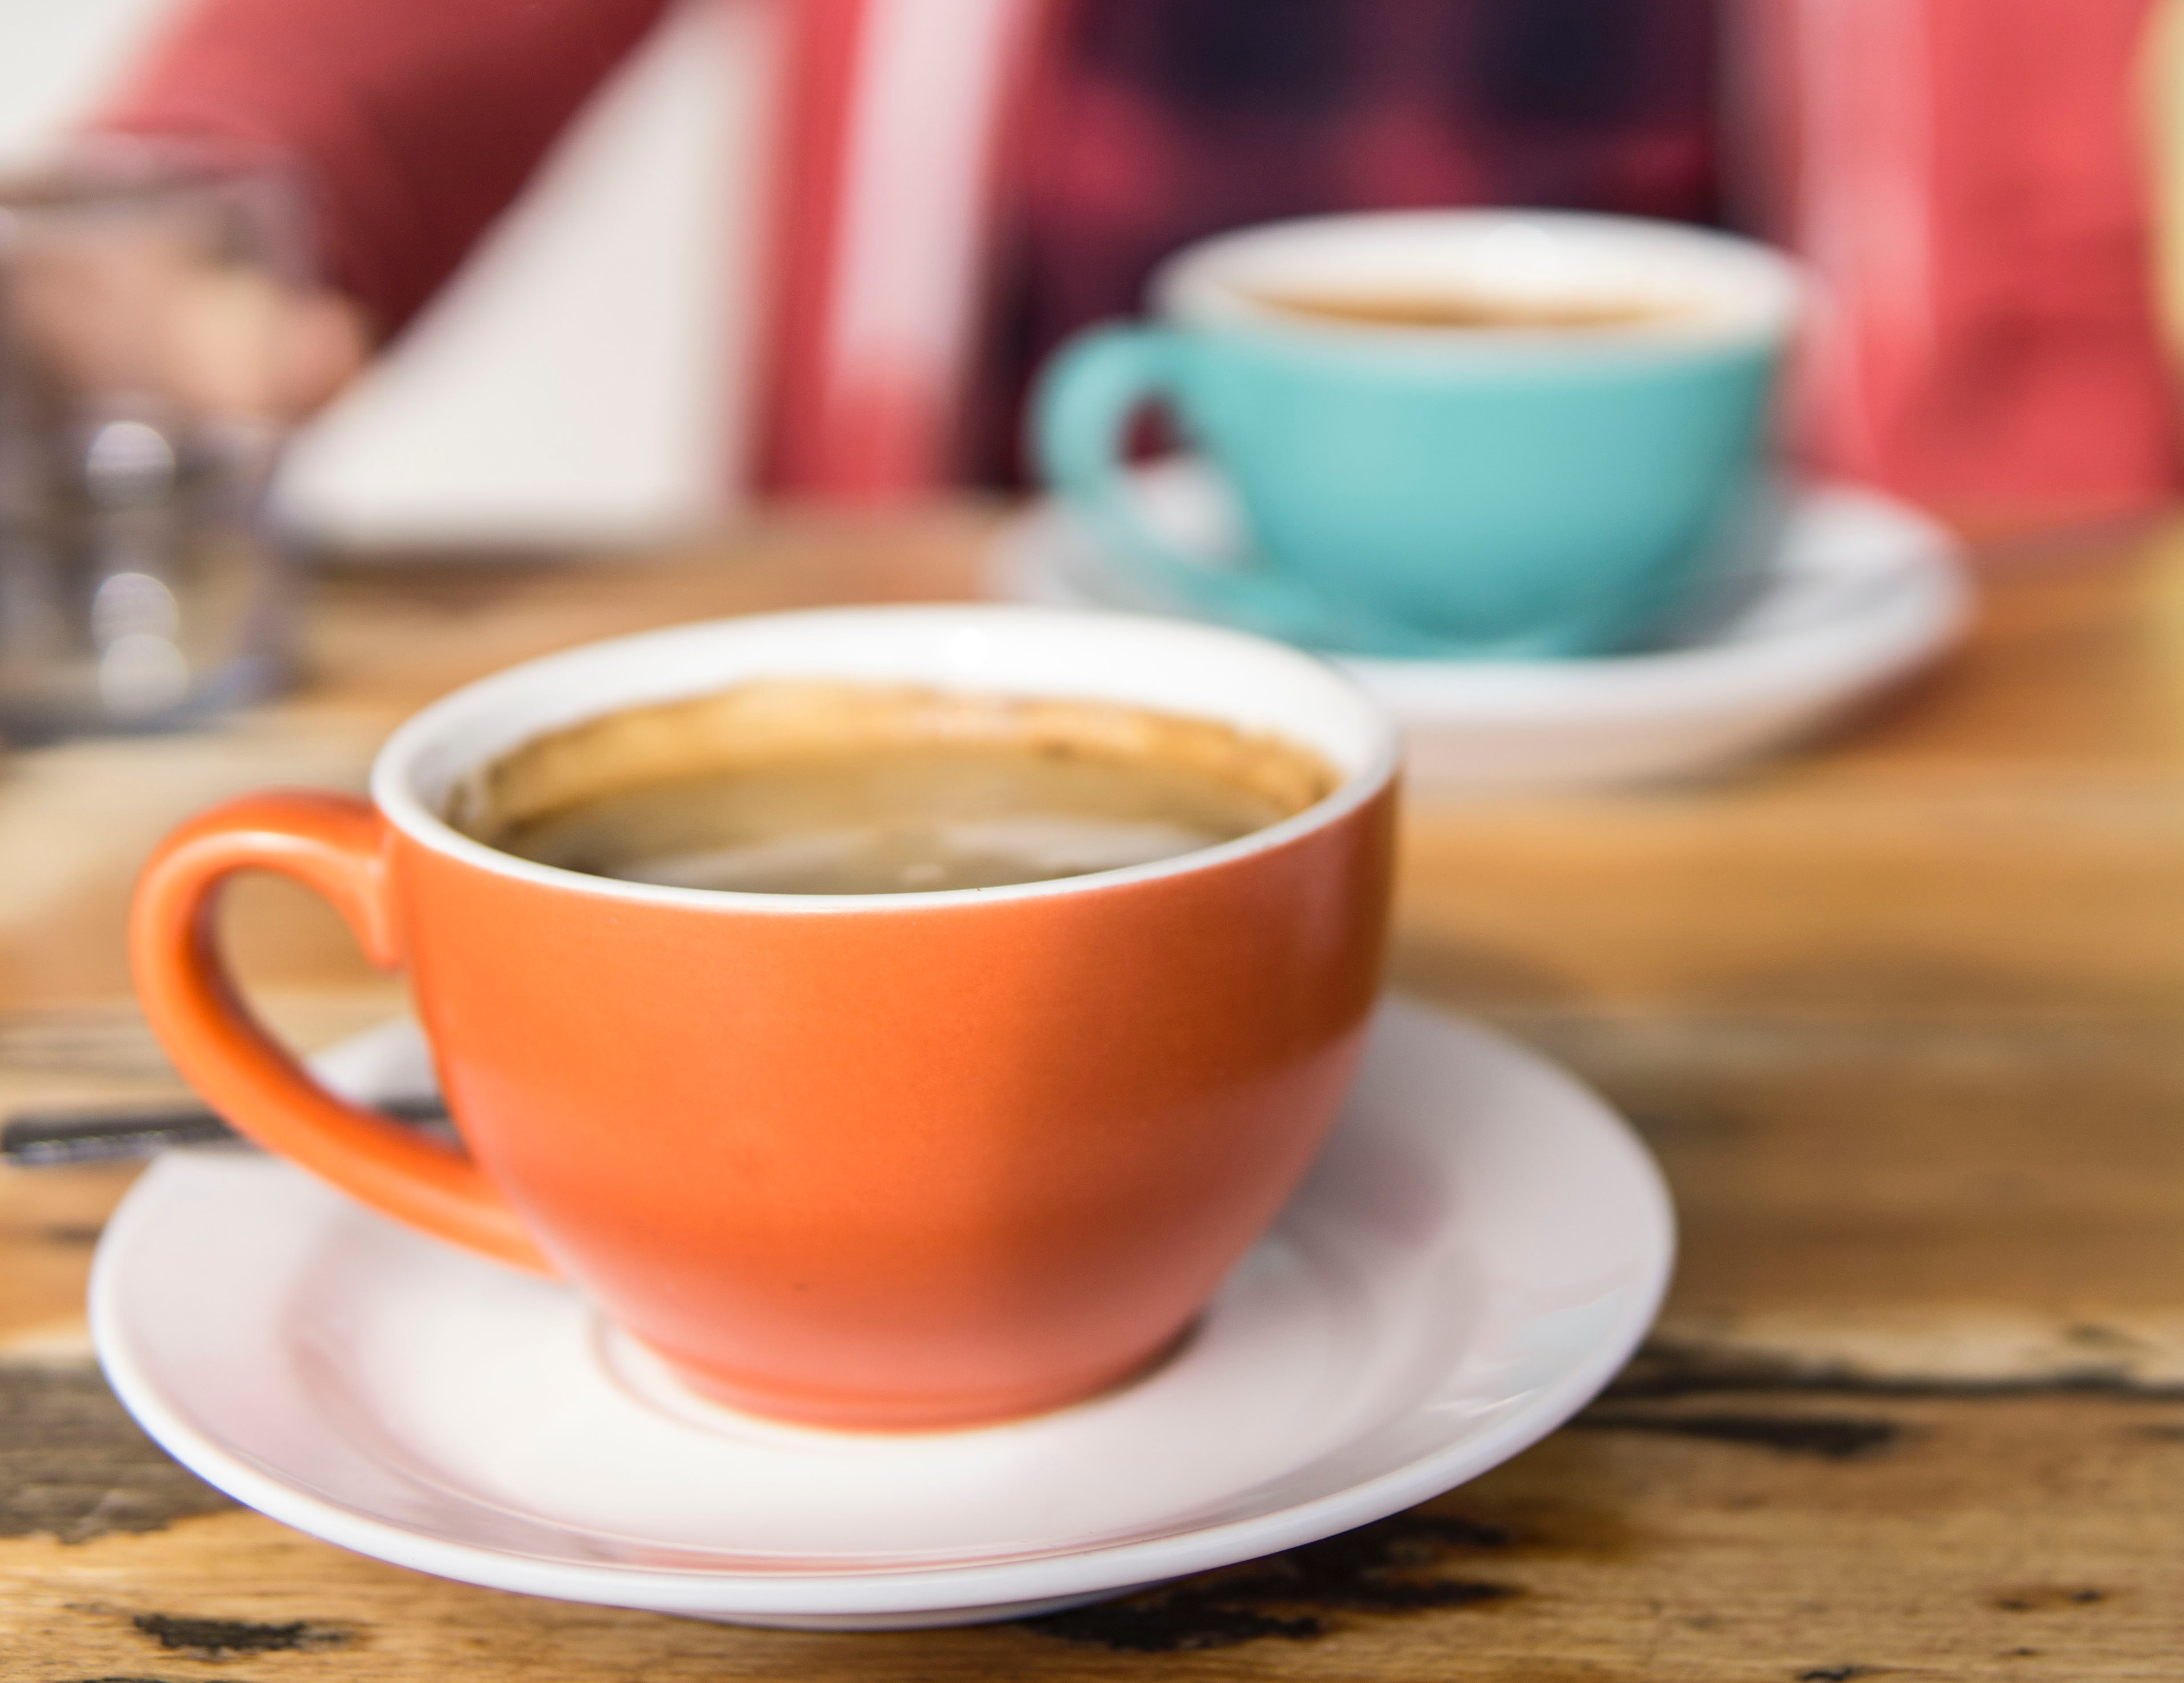 Orange and Teal Coffee Cups